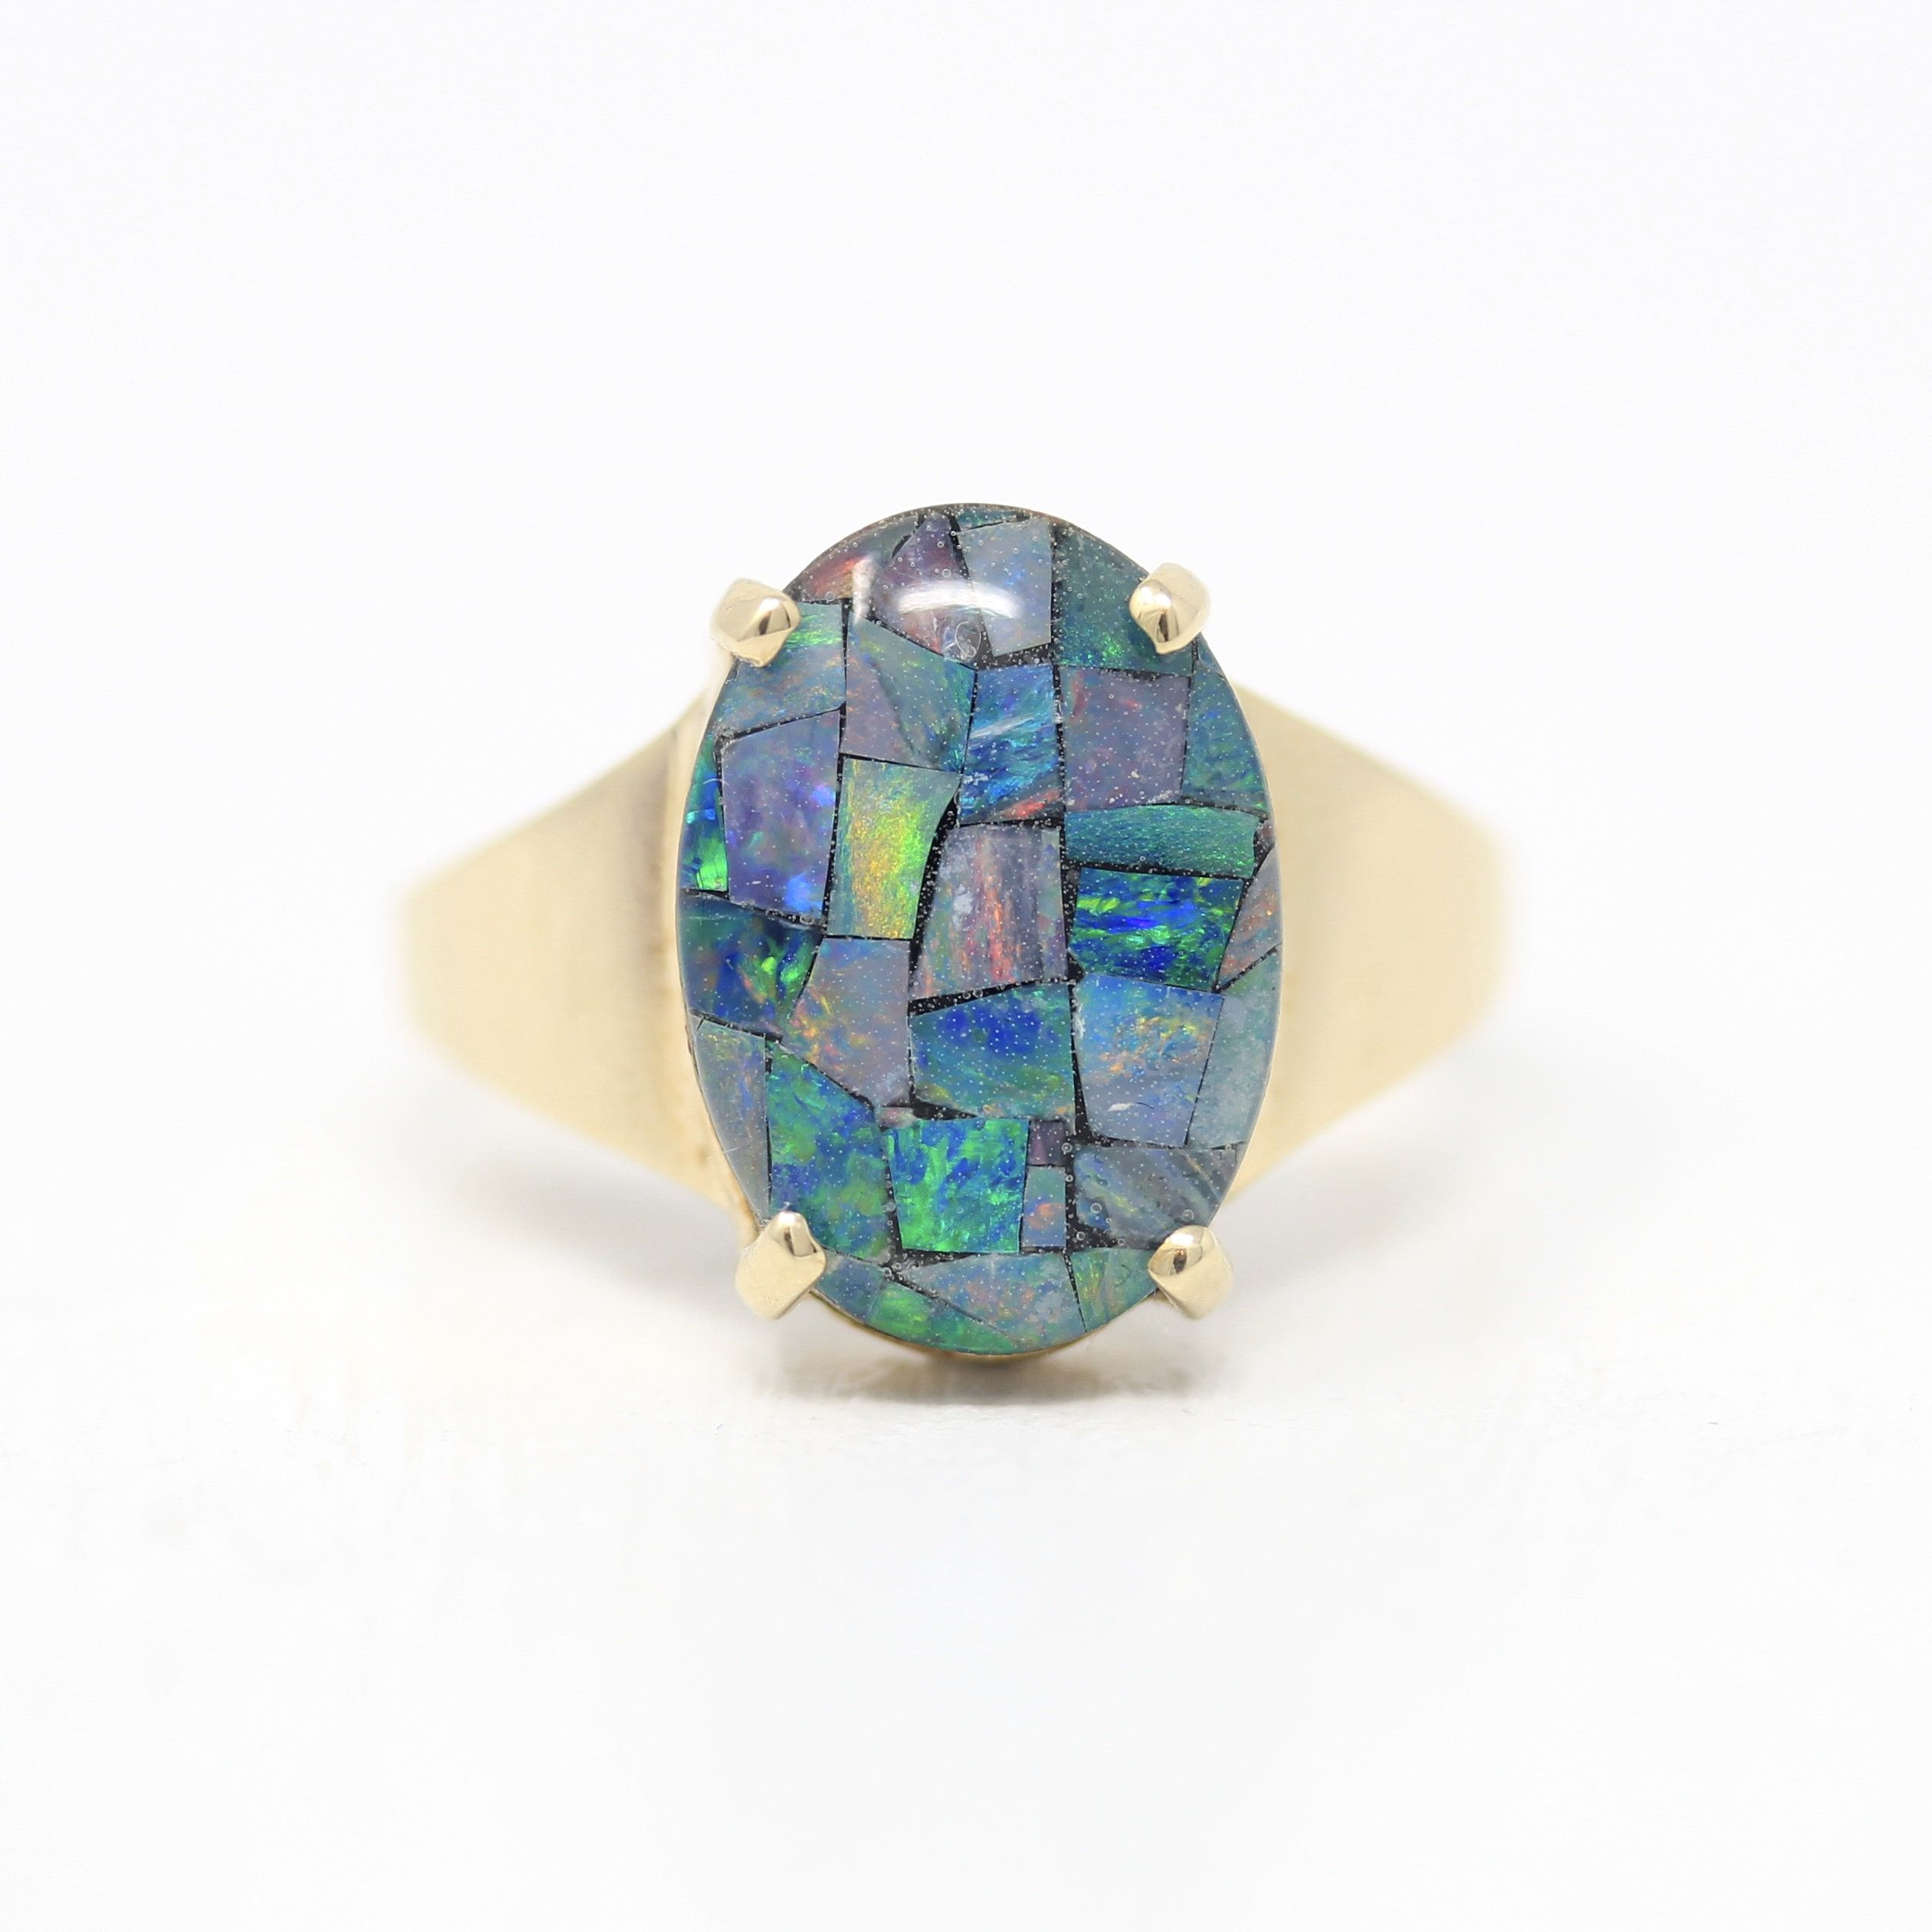 Mosaic Opal Triplet Ring Estate 10k Yellow Gold Oval October Birthstone Statement Vintage Size 6 1 4 Colorful Gem Unique Fine Jewelry In 2020 October Birth Stone Antique Rings Vintage Jewelry